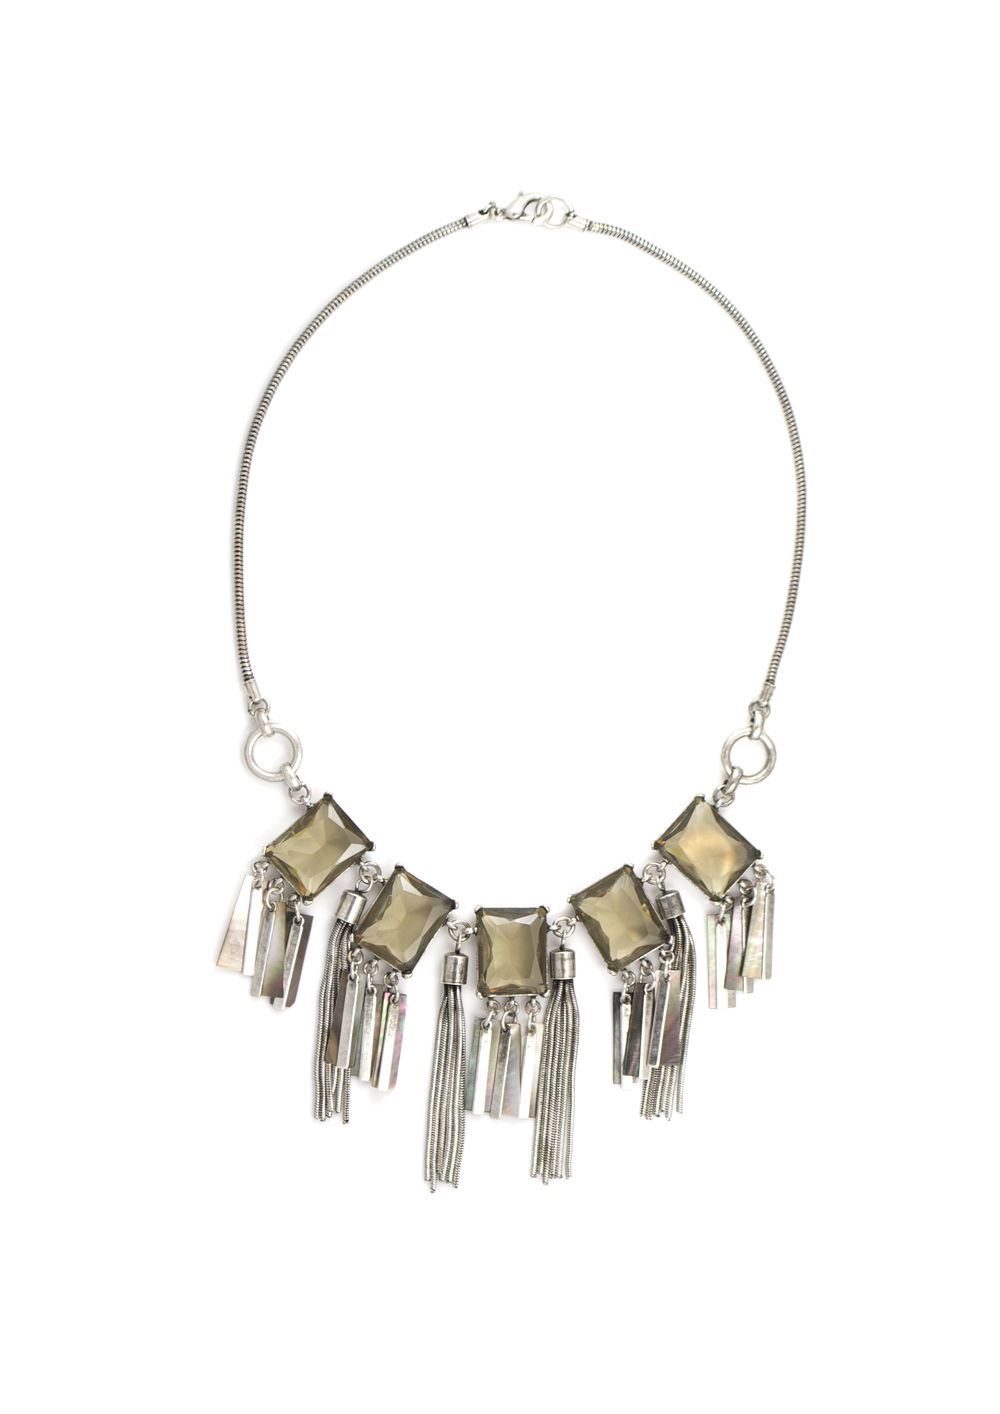 Smokey Shimmer necklace, available at  Gerard Yosca .